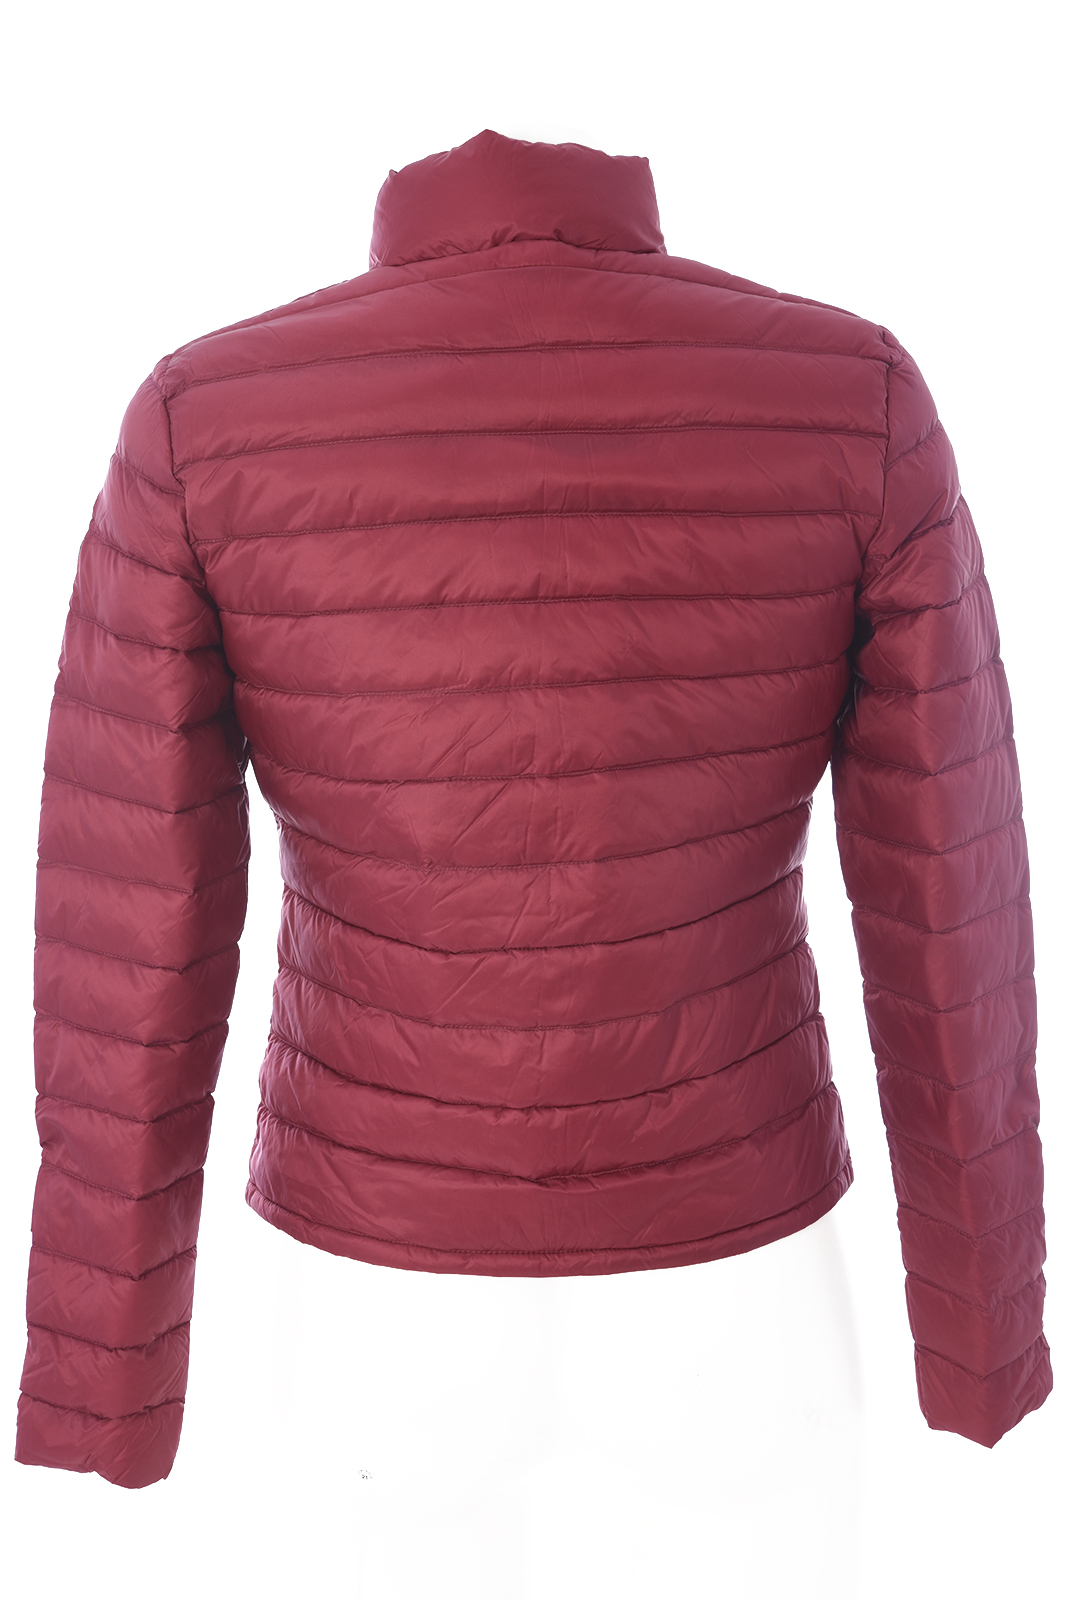 Blouson / doudoune  Just over the top SONIA 418  FRAMBOISE